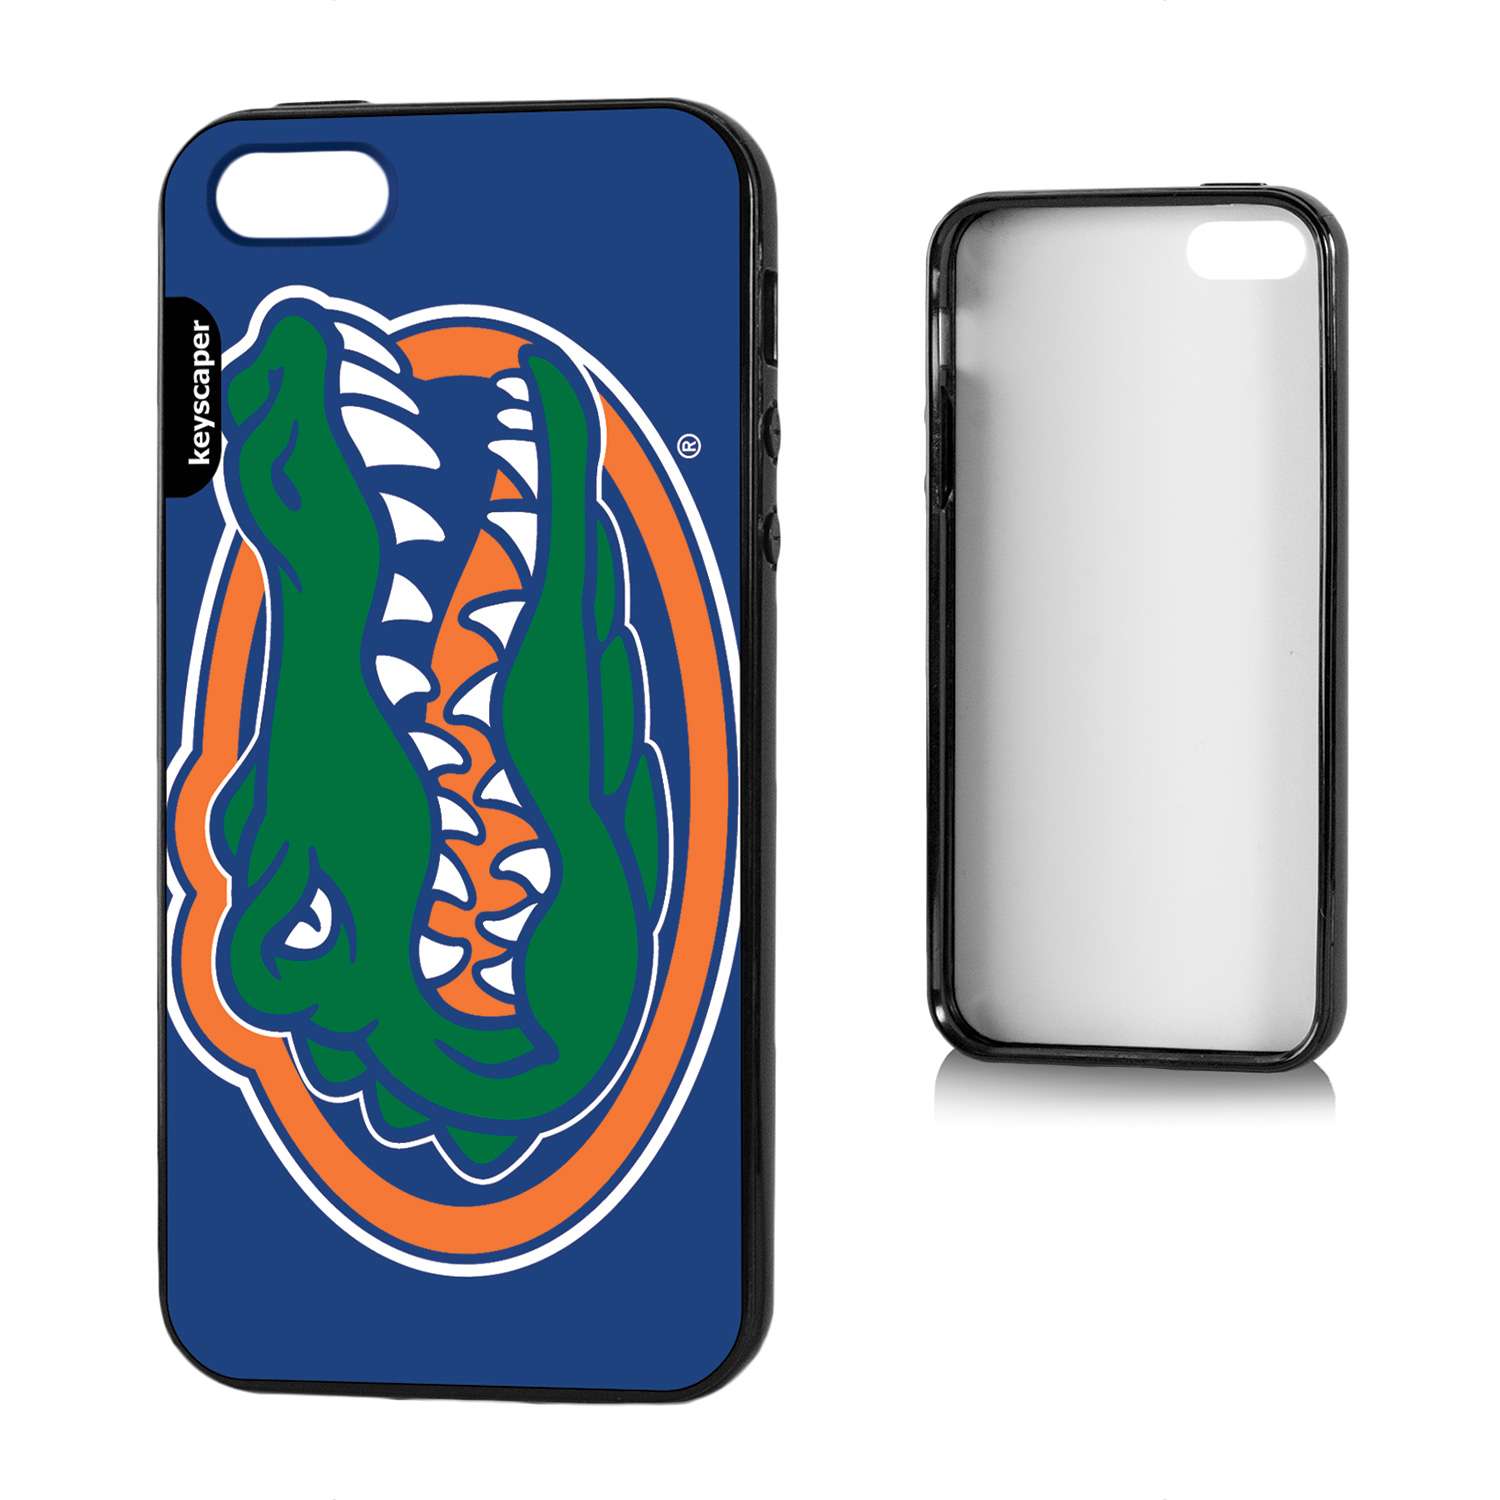 Florida Gators iPhone 5 and iPhone 5s Bumper Case